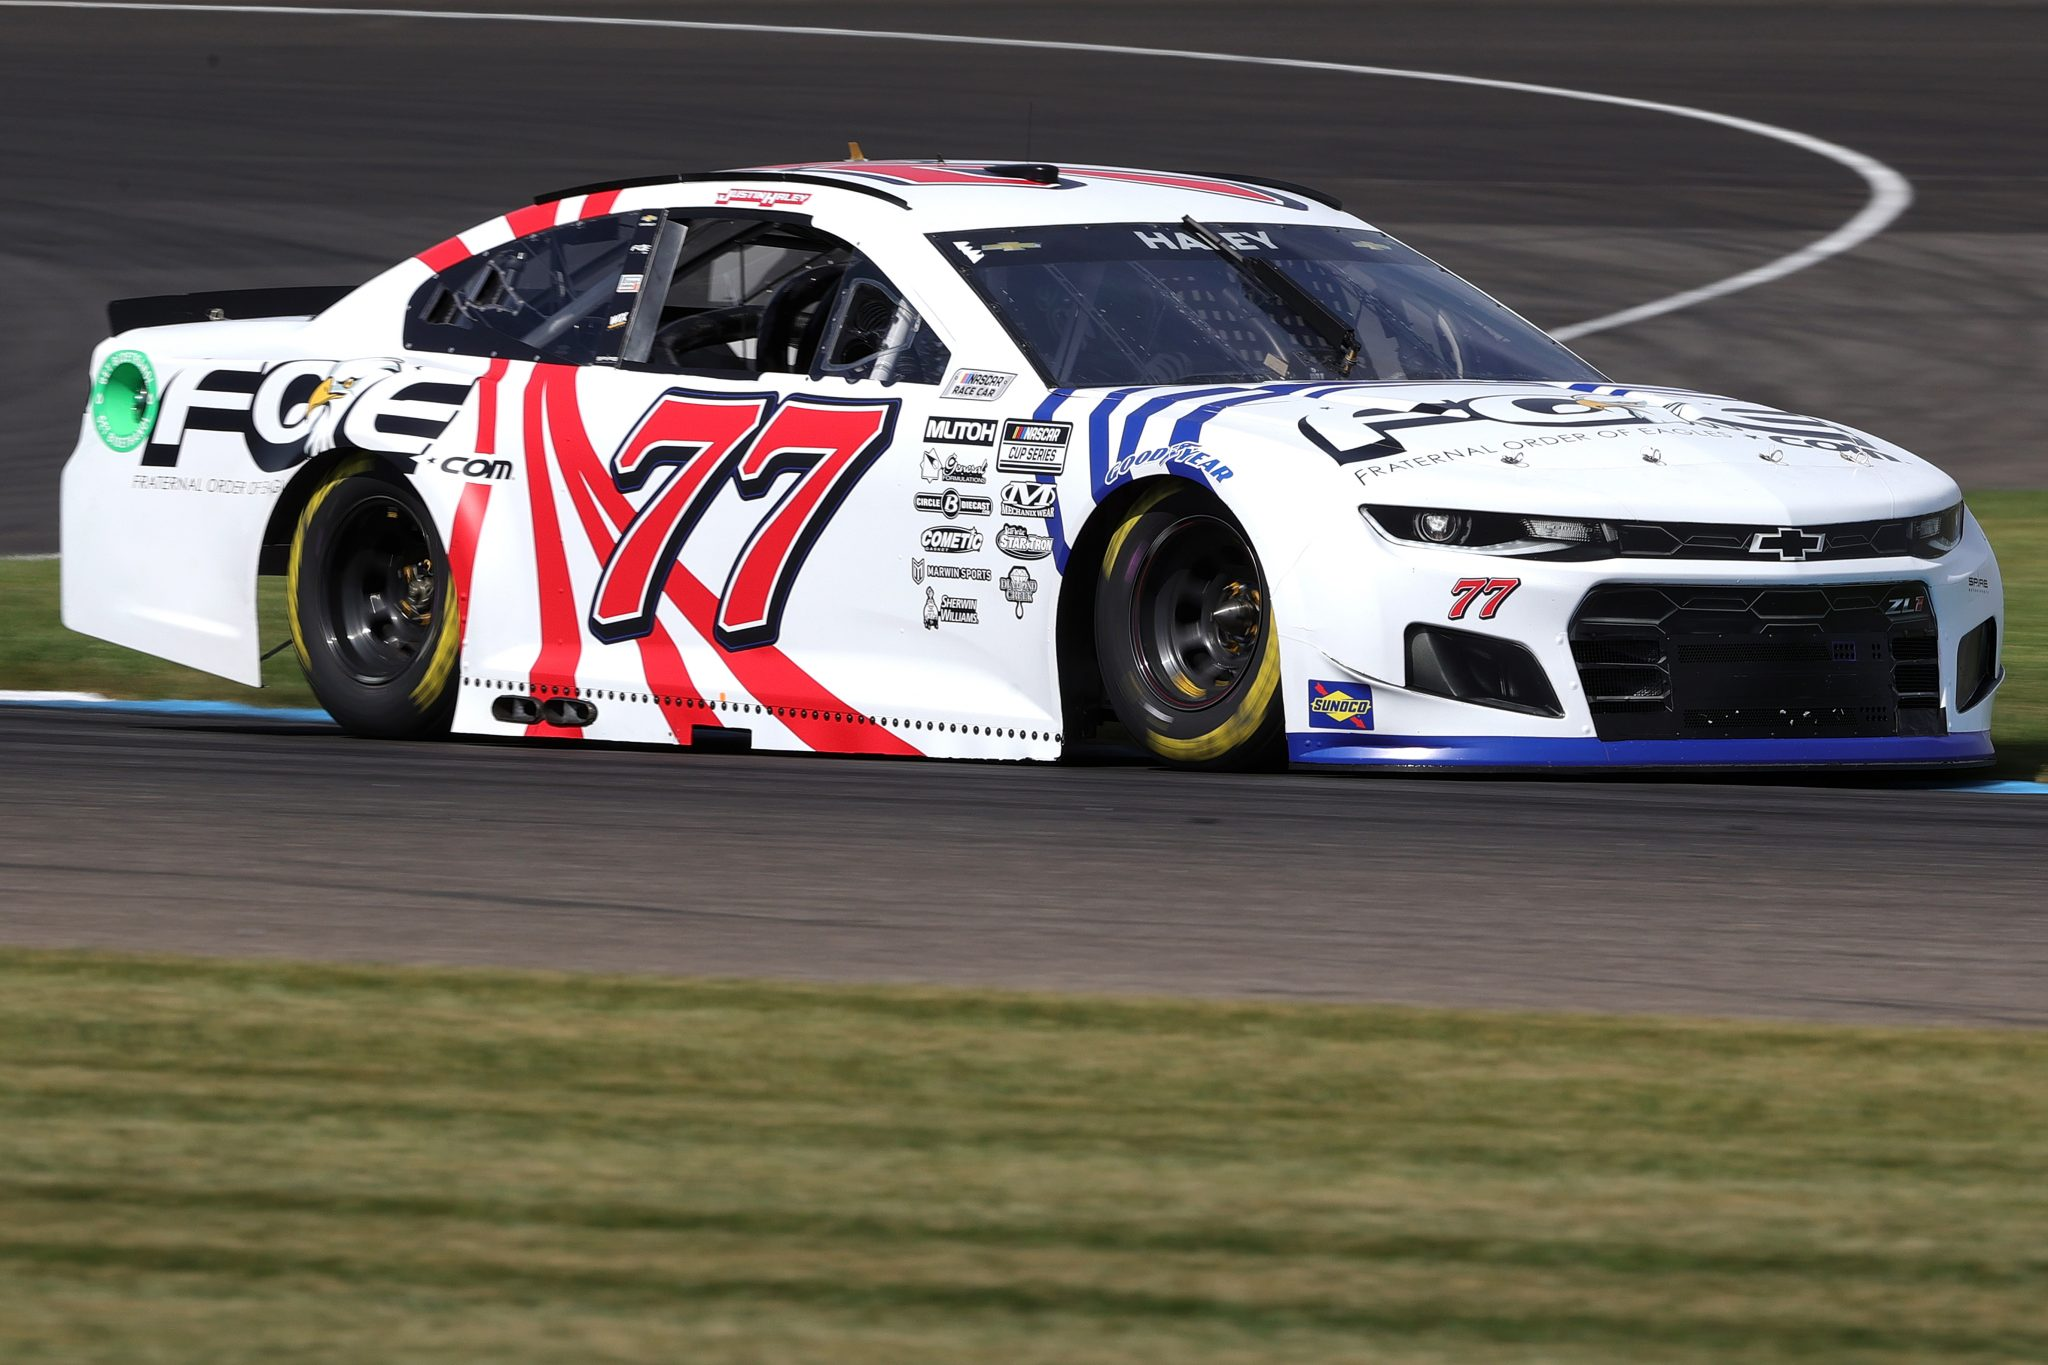 INDIANAPOLIS, INDIANA - AUGUST 14: Justin Haley, driver of the #77 Fraternal Order of Eagles Chevrolet, drives during practice for the NASCAR Cup Series Verizon 200 at the Brickyard at Indianapolis Motor Speedway on August 14, 2021 in Indianapolis, Indiana. (Photo by Stacy Revere/Getty Images) | Getty Images